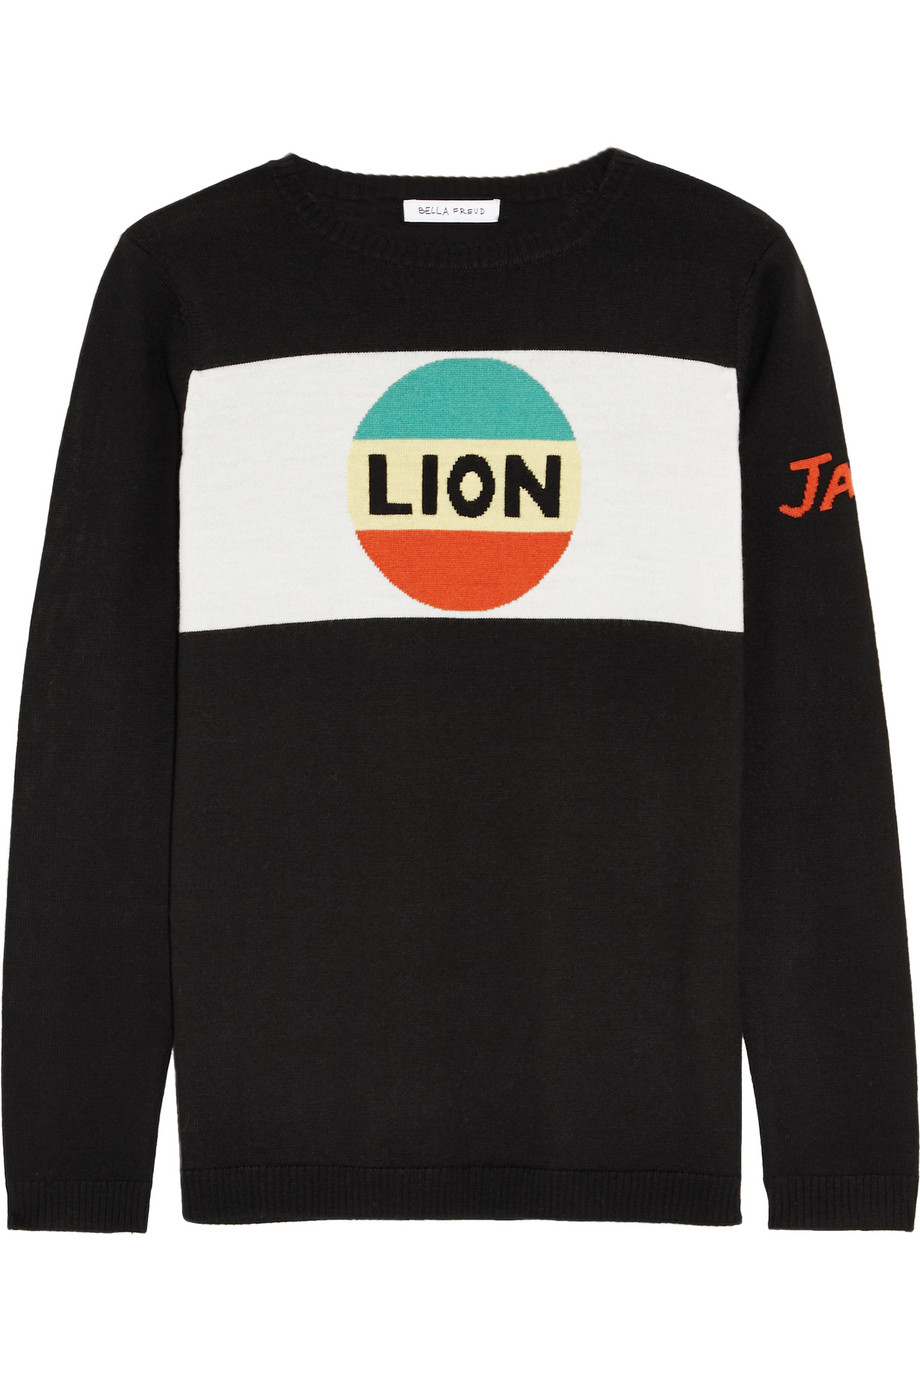 Bella Freud Lion Stripe Intarsia Merino Wool Sweater, Black, Women's, Size: XS